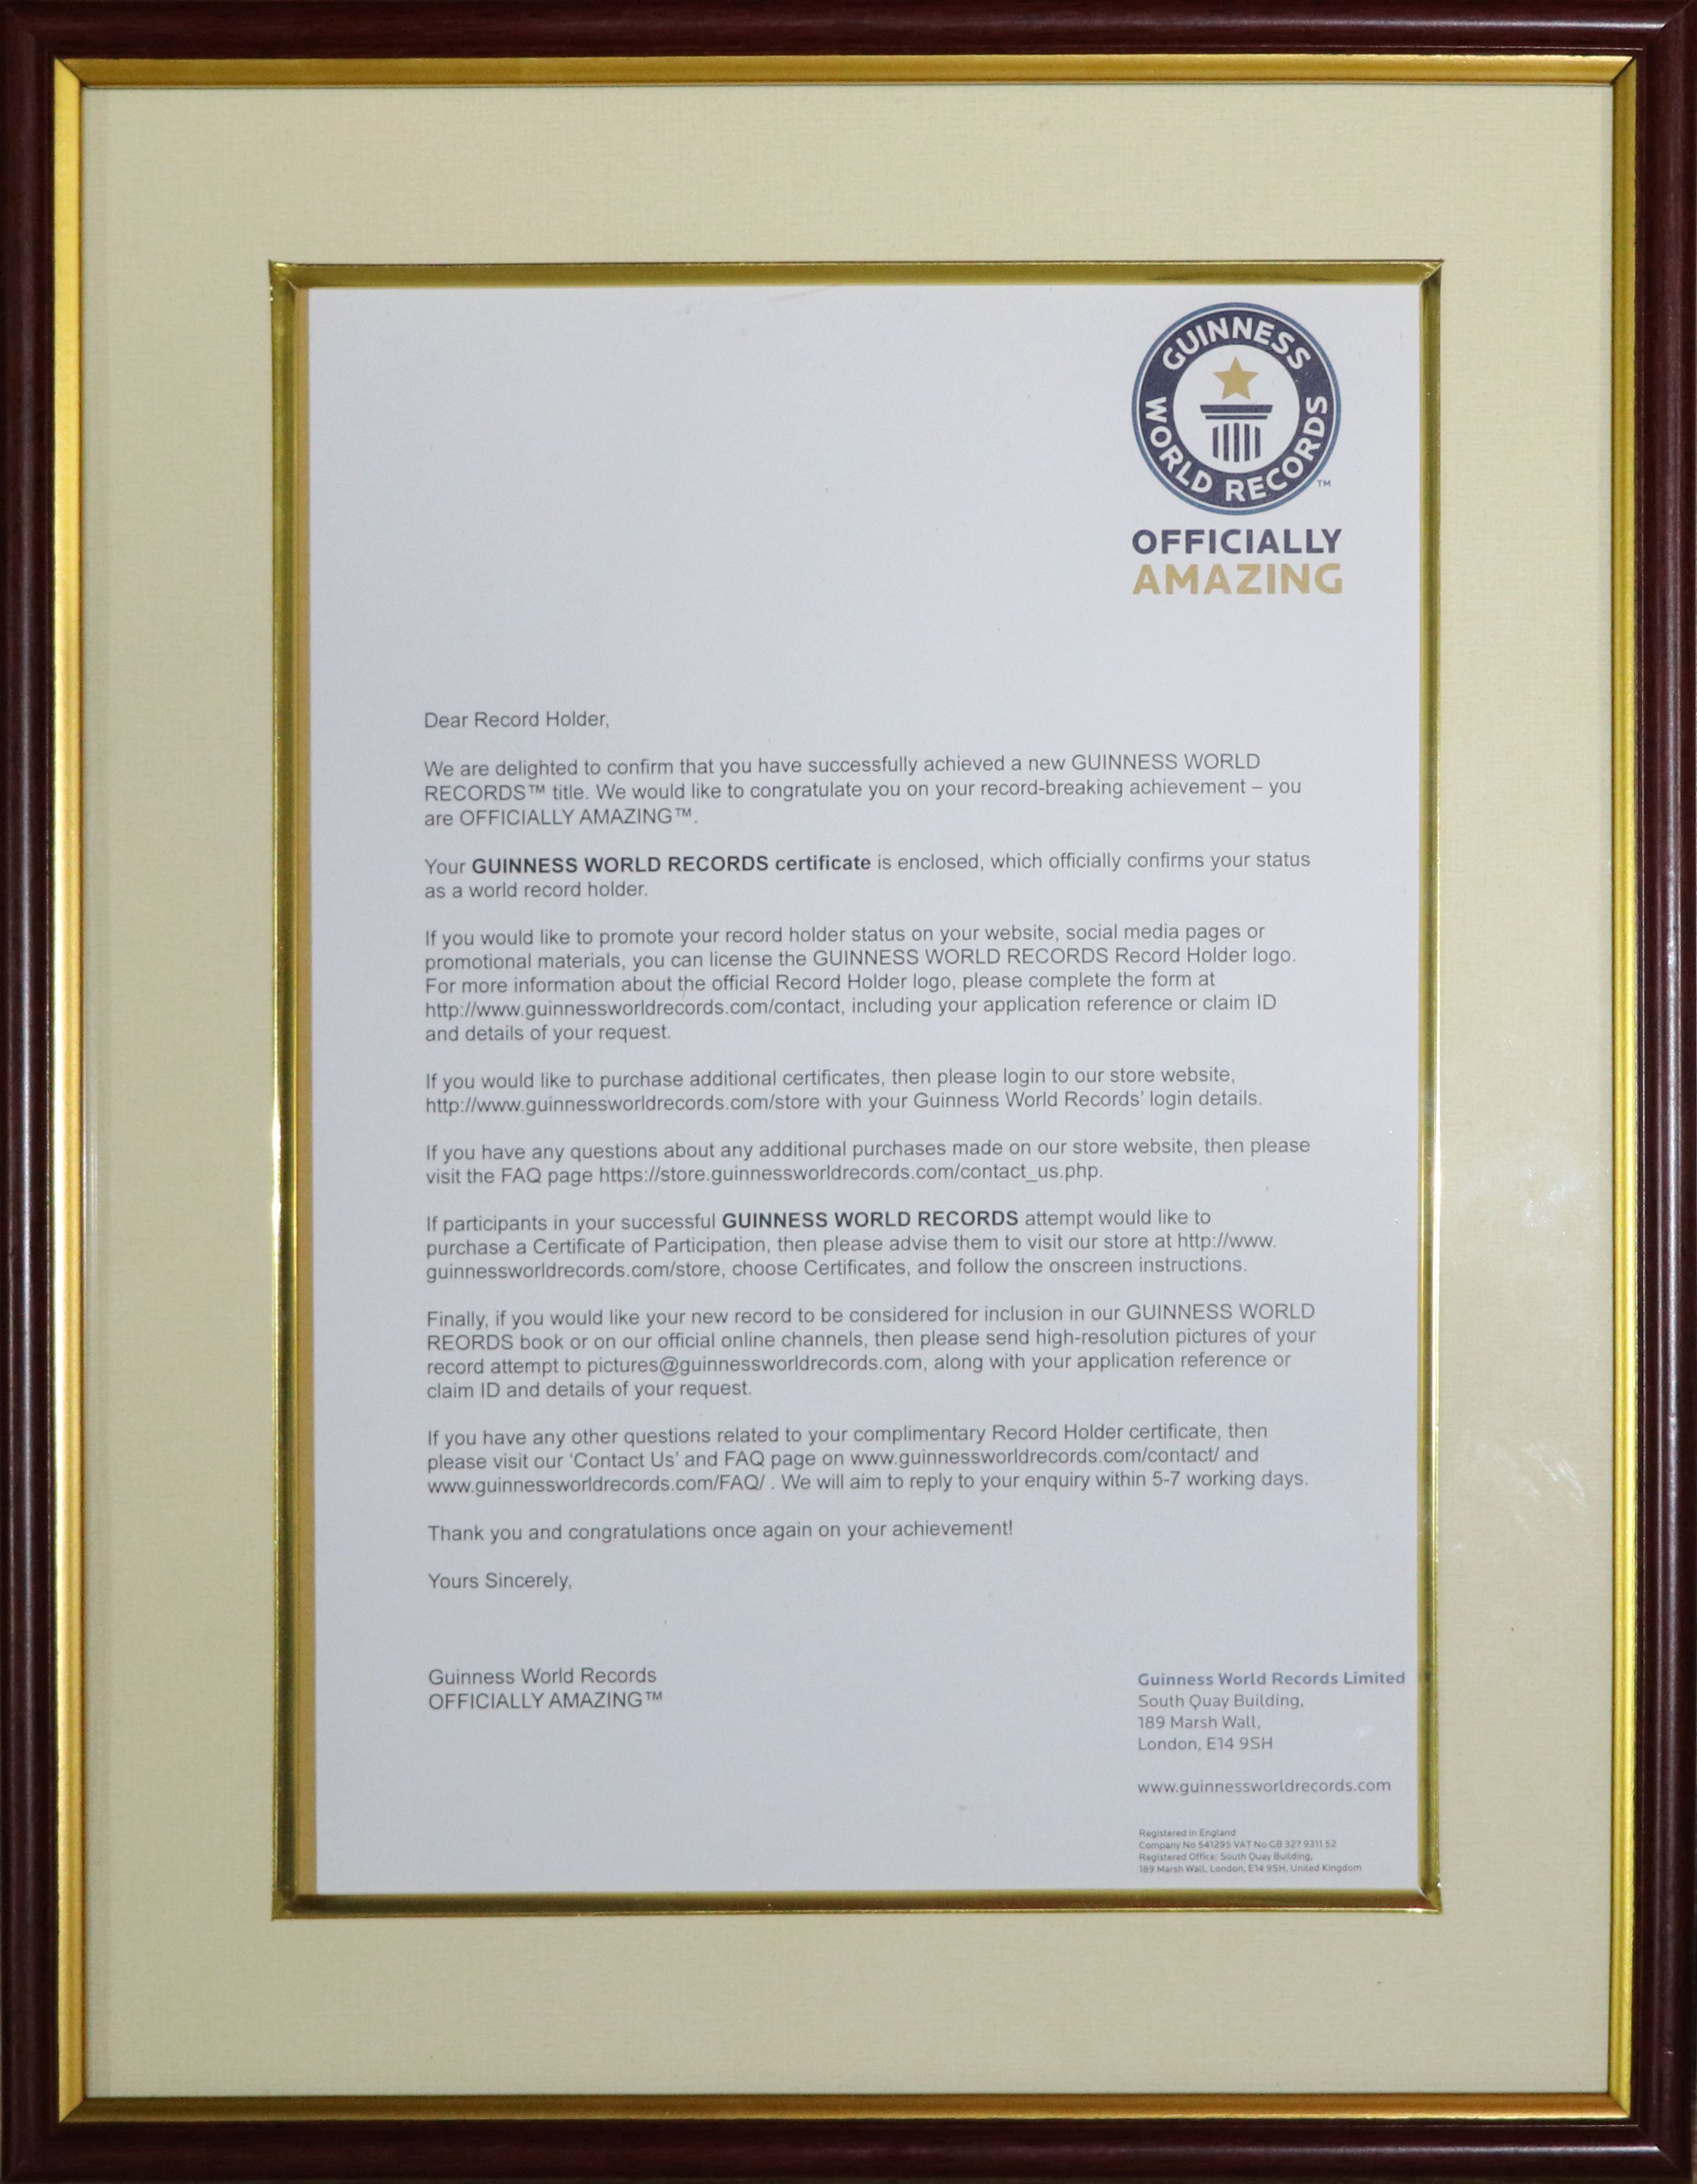 e8549456cb46b5493a0031d993da438d - How To Get In The Guinness Book Of Records